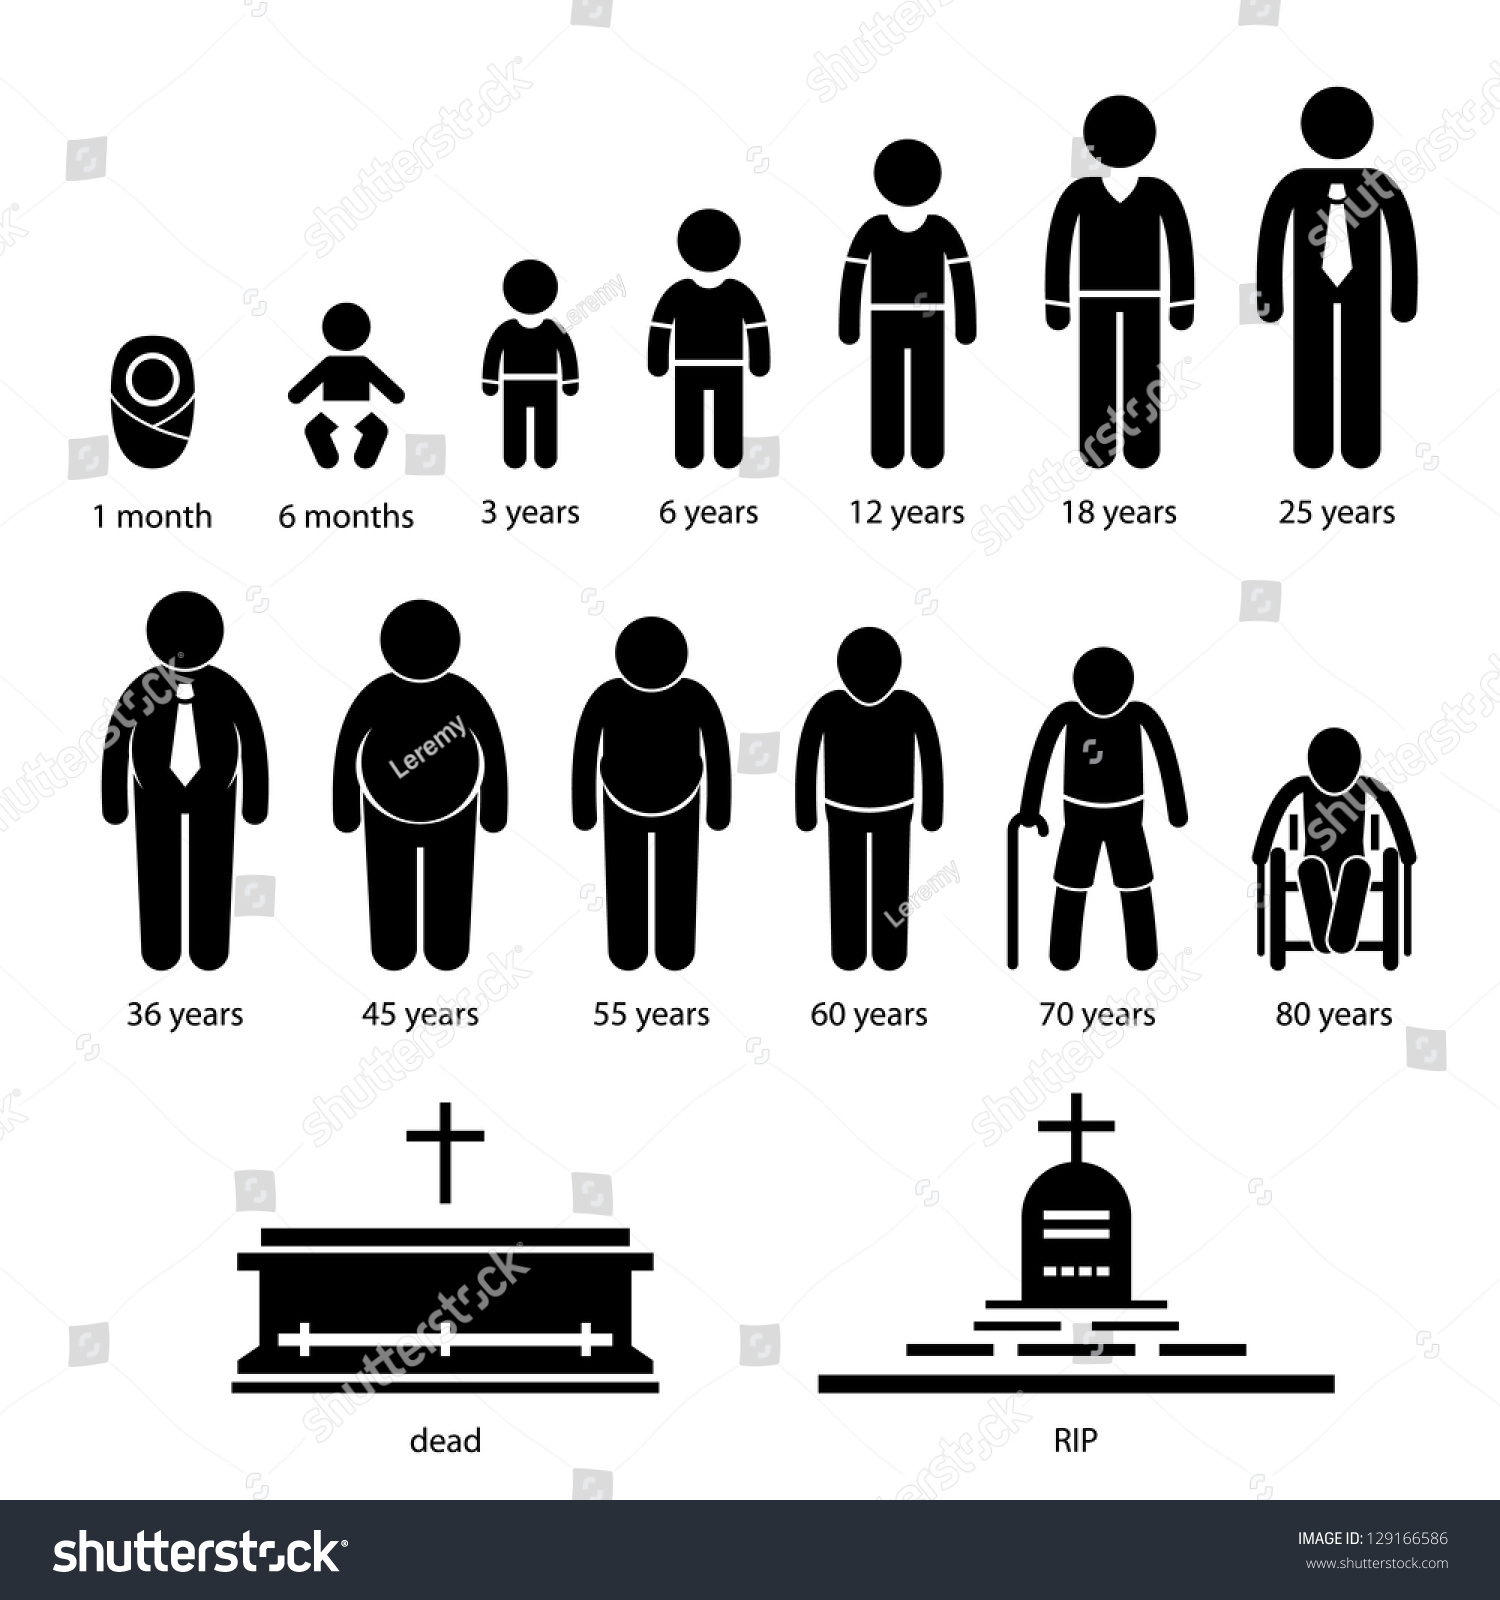 ... Growing Old Process Stage Development Stick Figure Pictogram Icon: www.shutterstock.com/pic-129166586/stock-vector-man-aging-age-human...